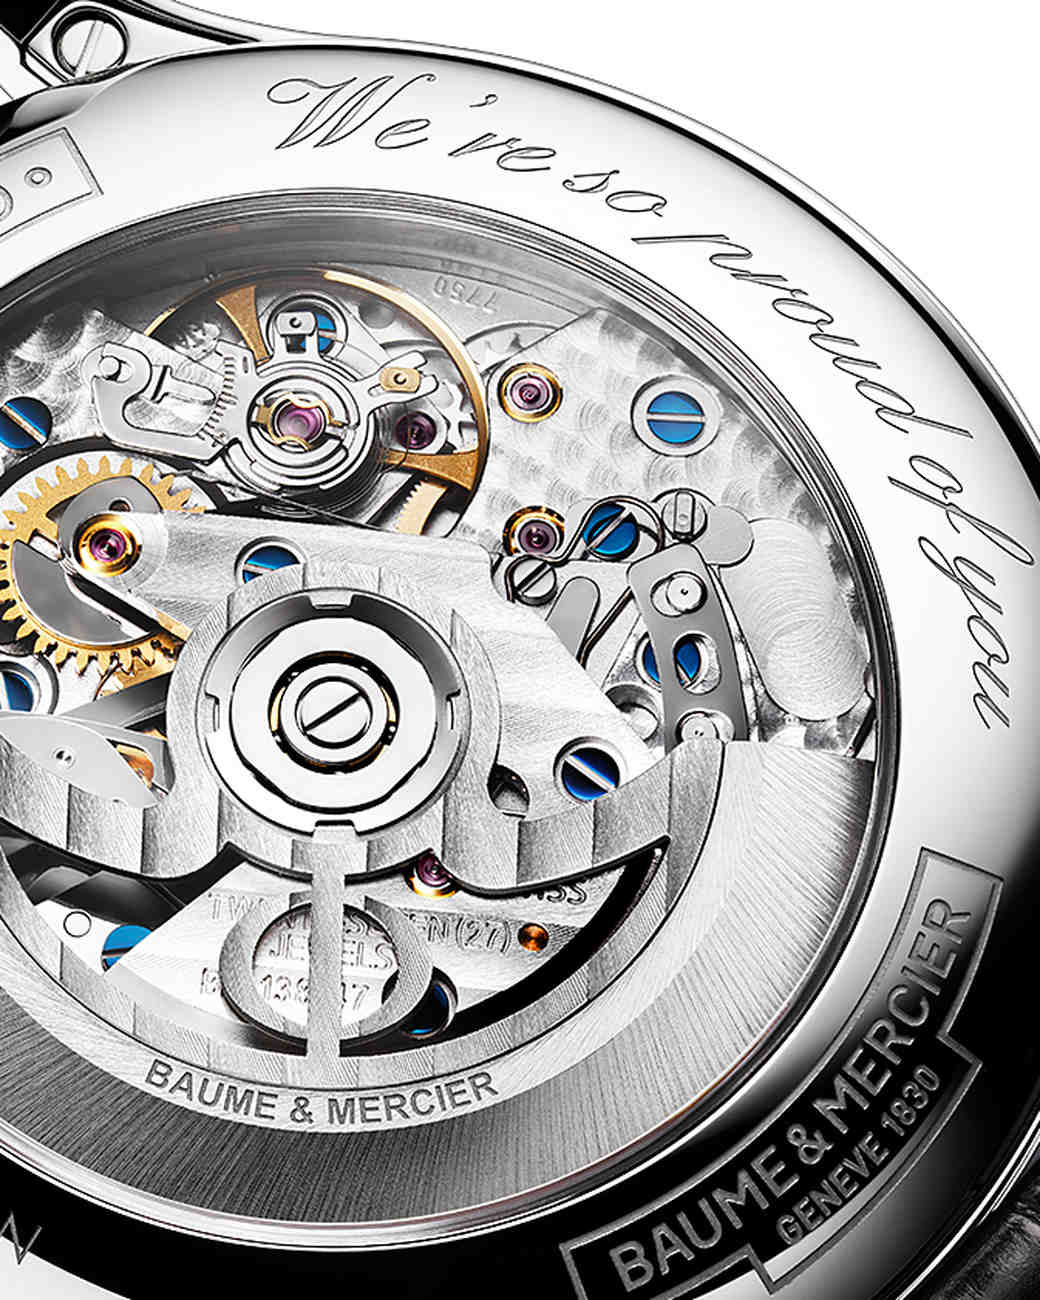 baume-mercier-watch-engraved-1-0514.jpg